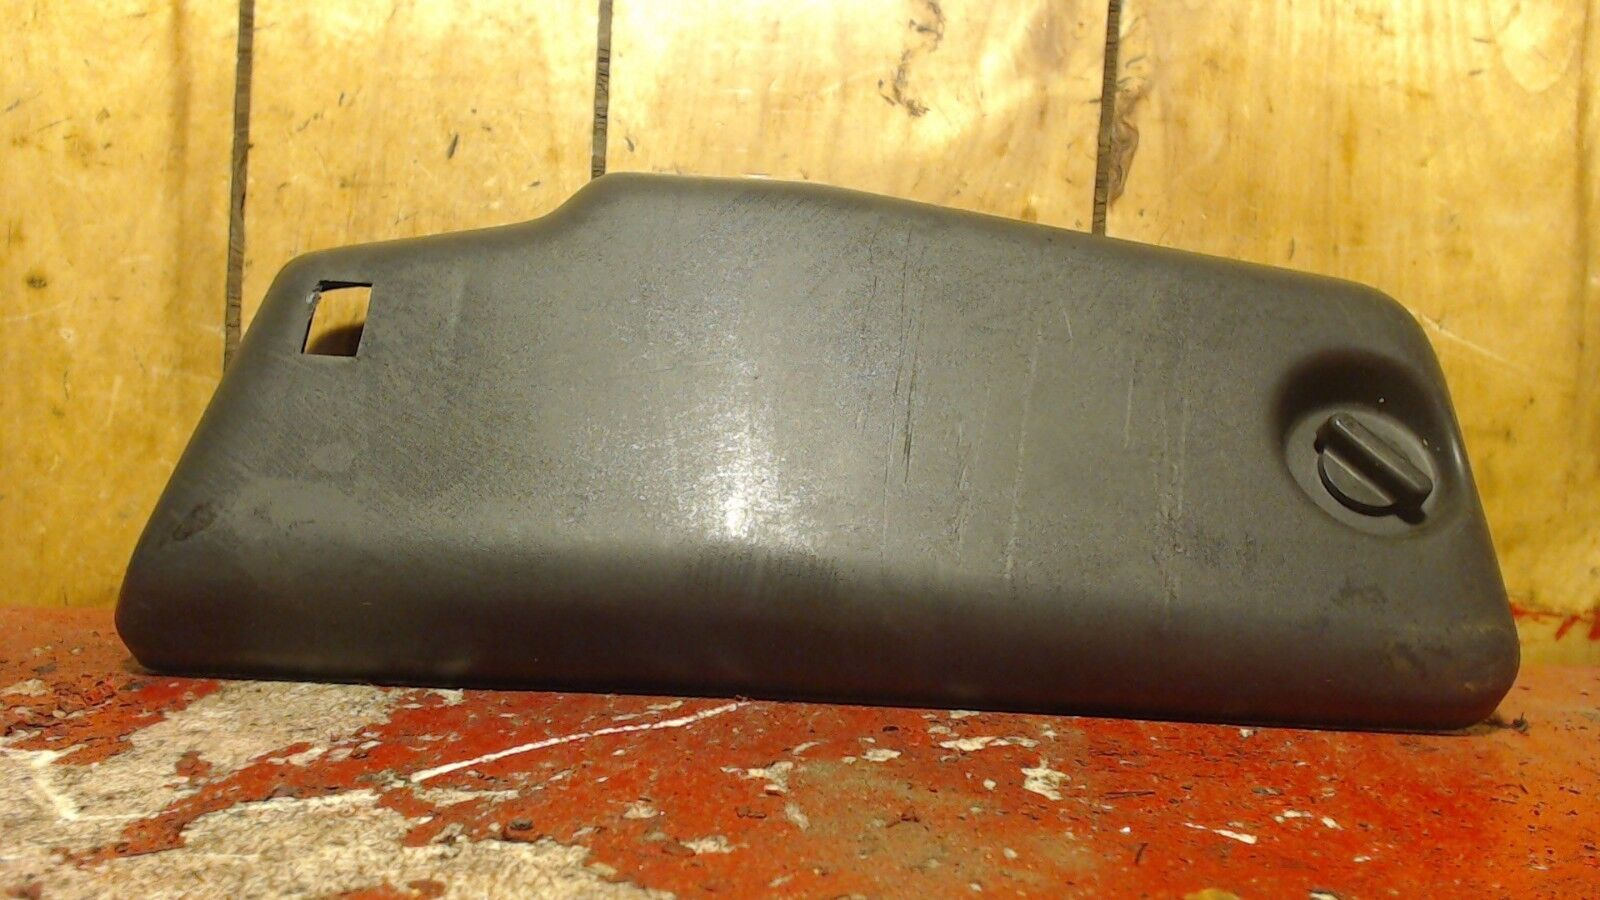 Used 1989 Honda Prelude Tail Lights For Sale 1990 Light Wiring 1988 1991 Passenger Cover Trunk Trim Gray Get Fast 4 Free